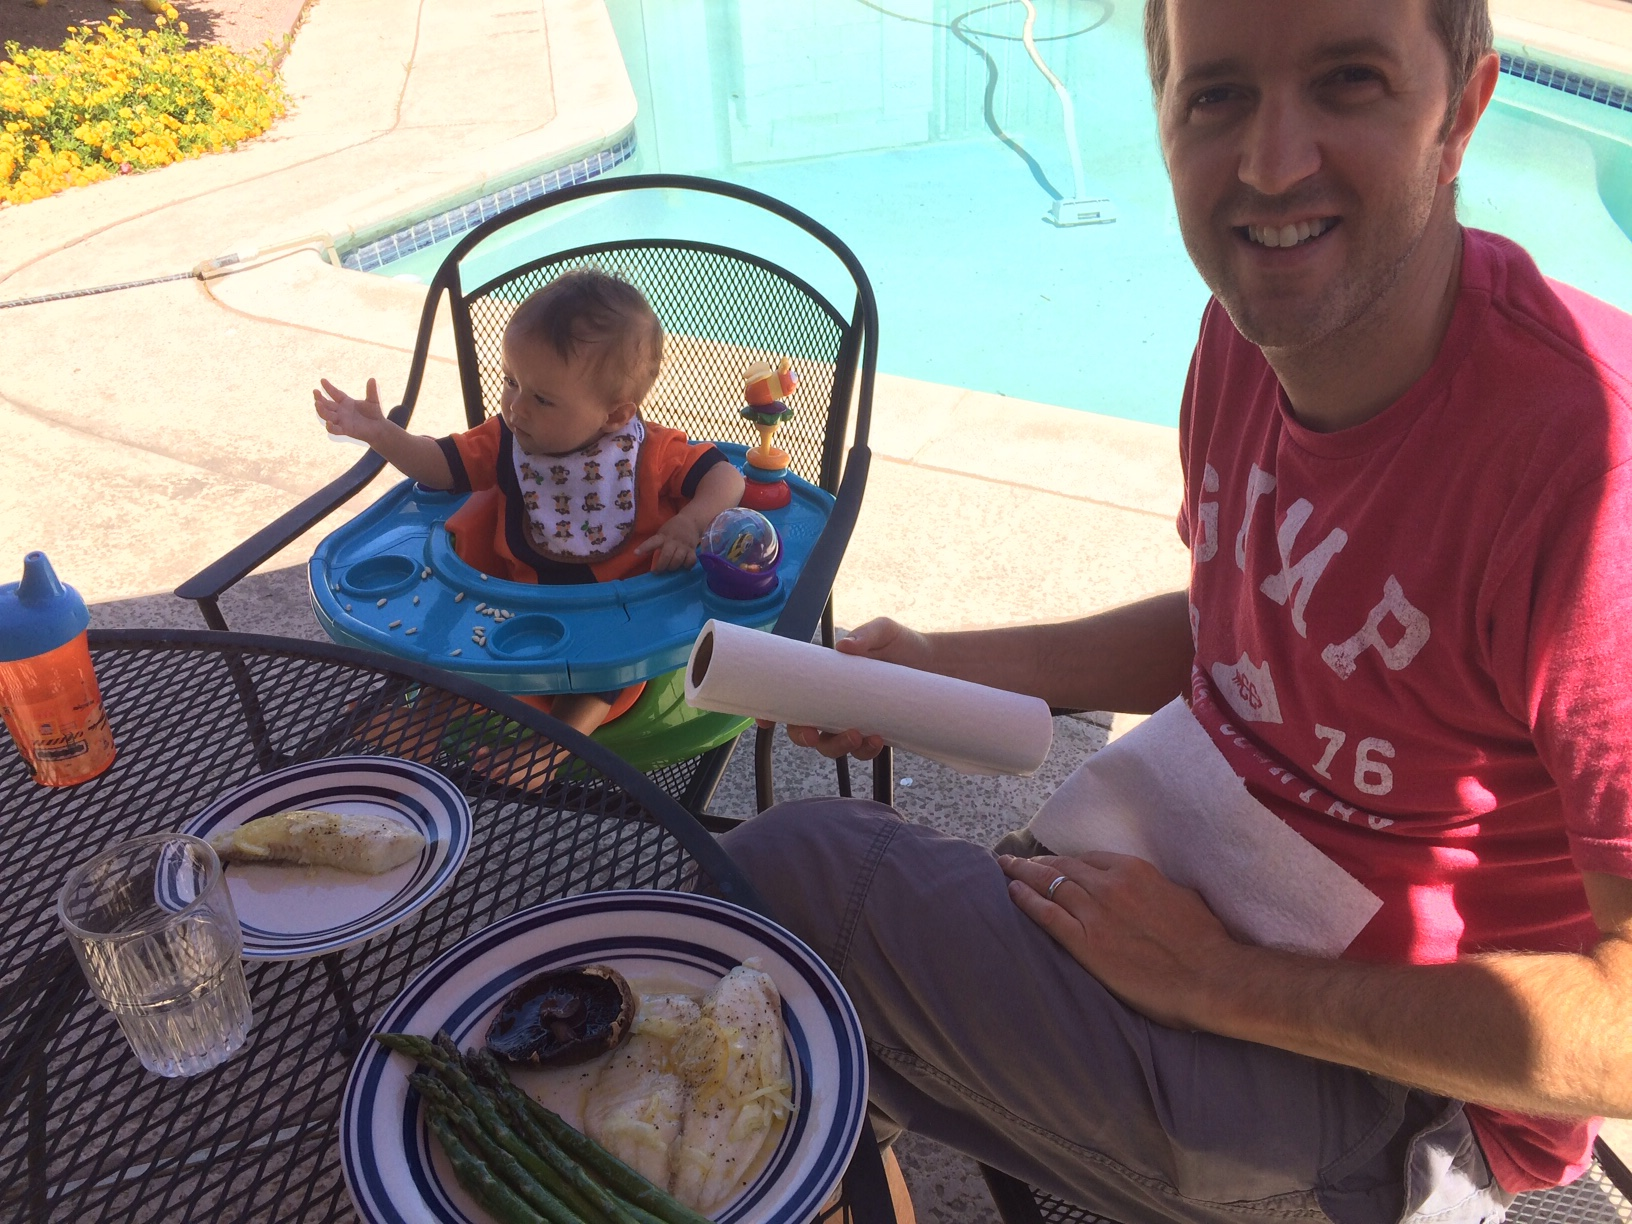 English hubby and Baby boy o having fish lunch by pool